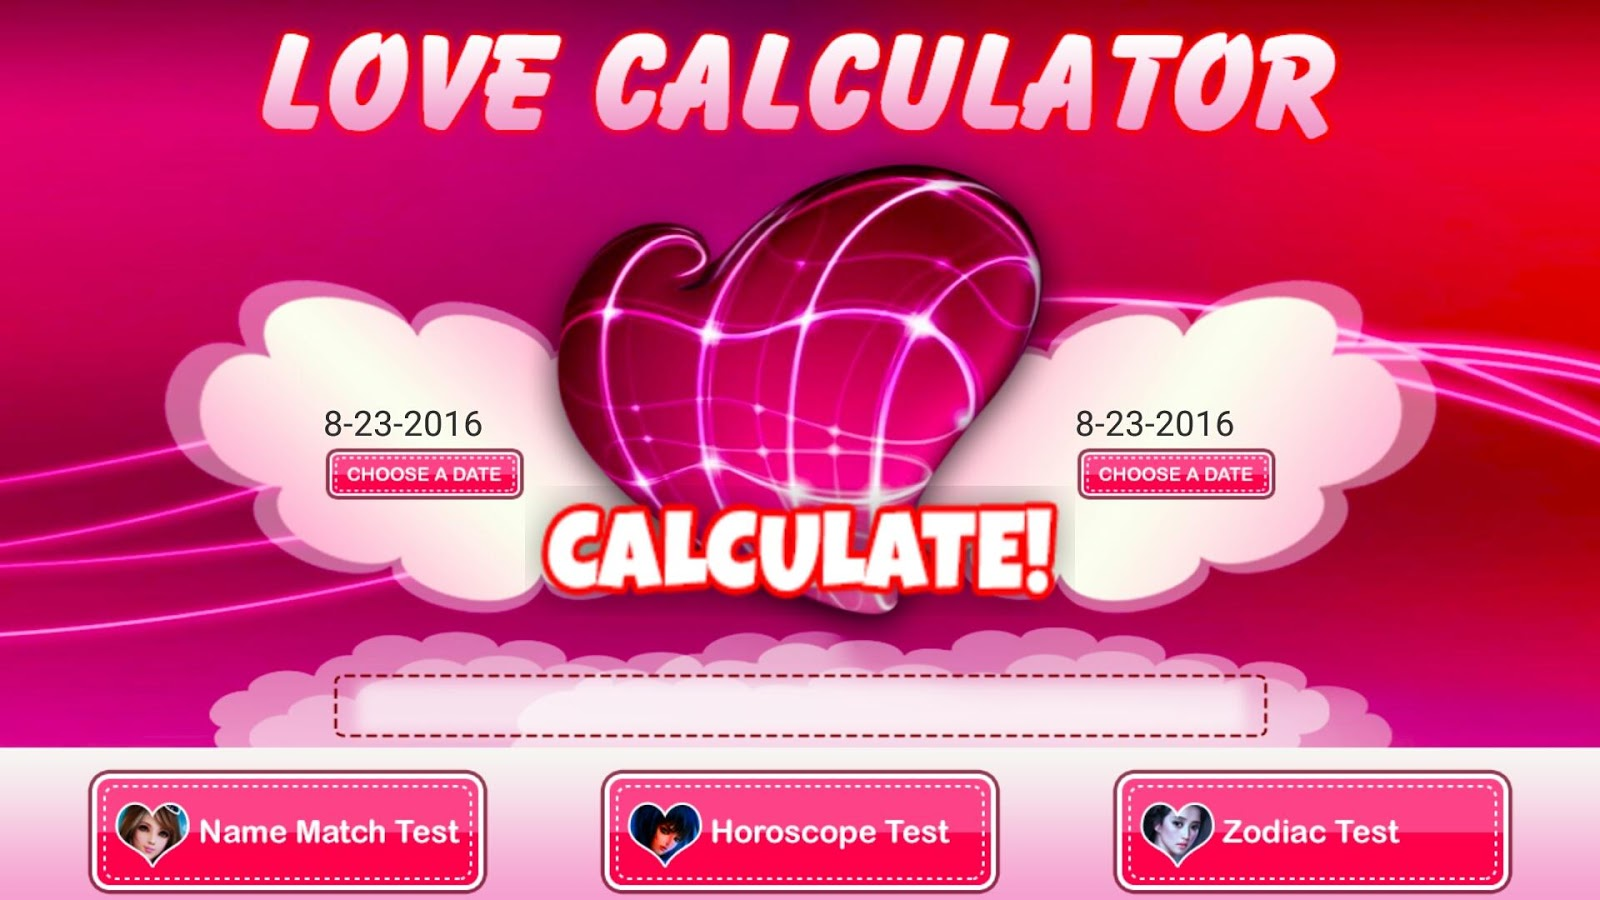 Uncategorized Thelovecalculator love calculator android apps on google play screenshot